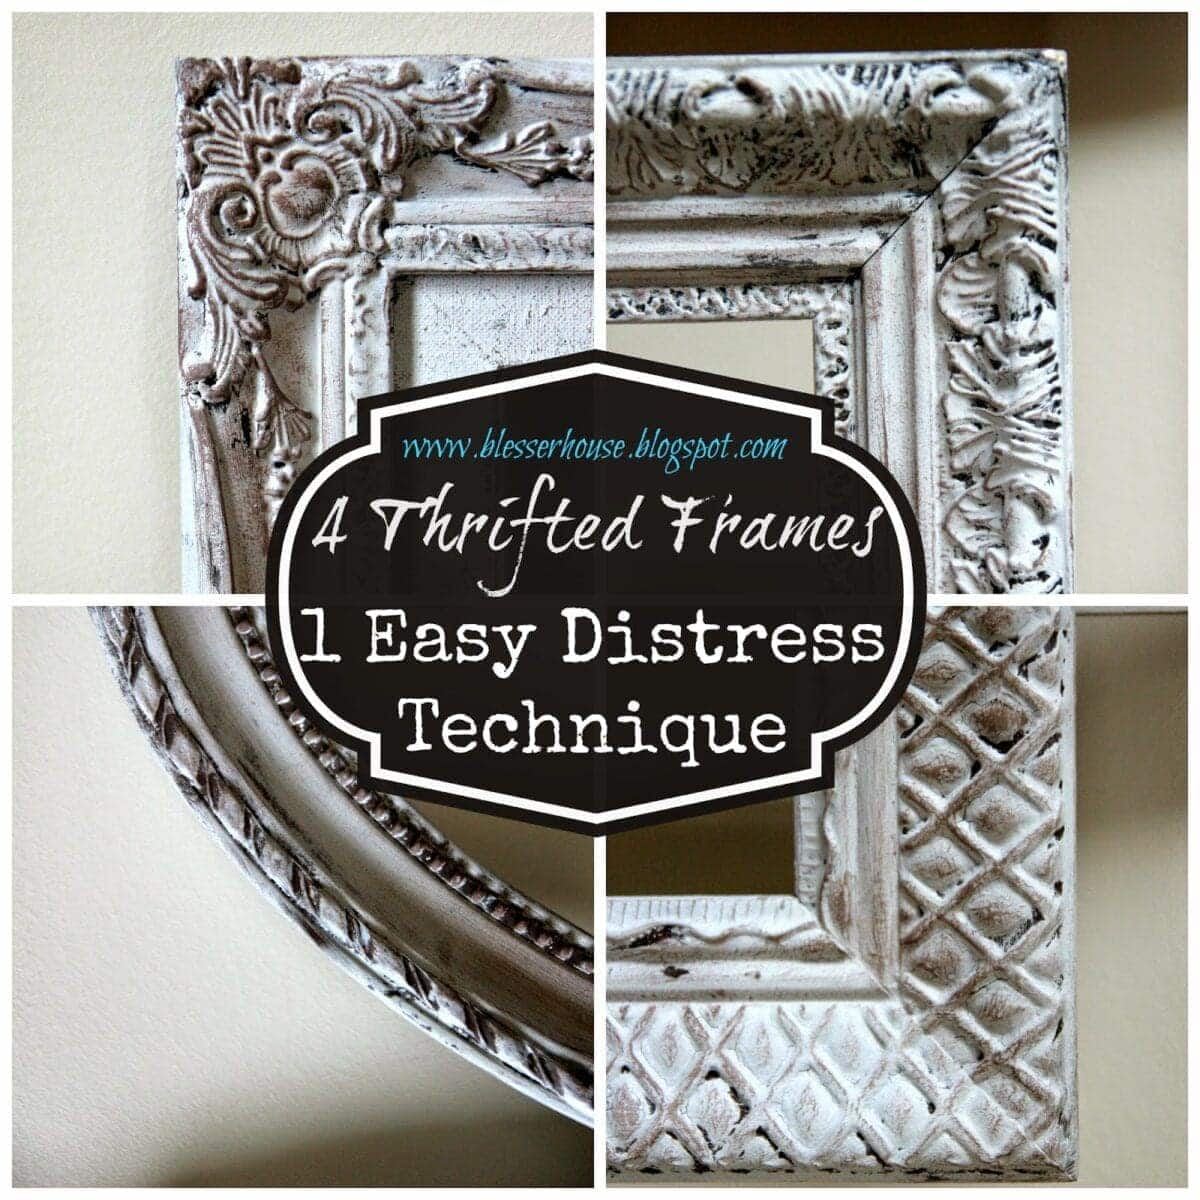 Strange 4 Thrifted Frames 1 Easy Distress Technique Blesser House Download Free Architecture Designs Terstmadebymaigaardcom